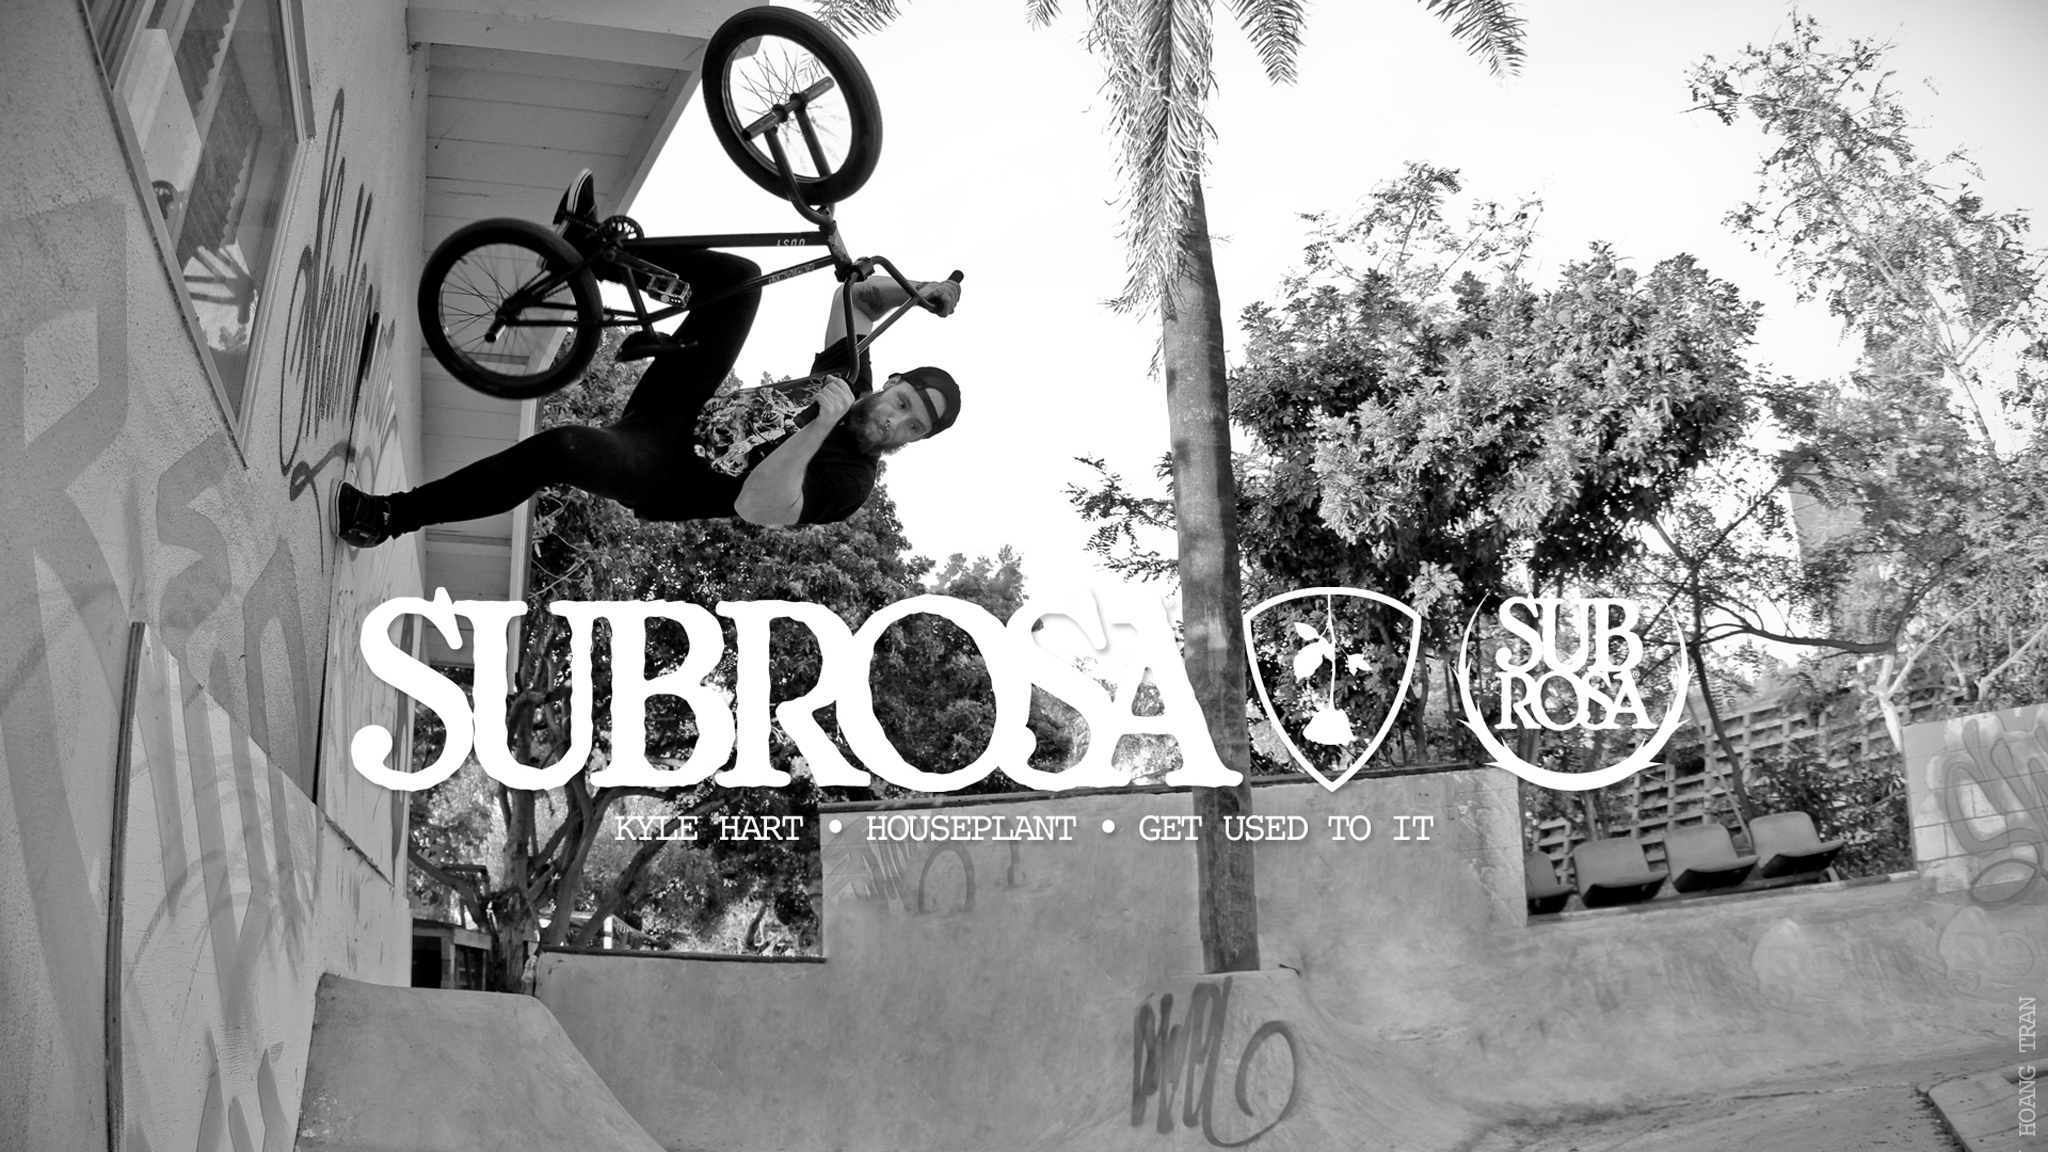 Subrosa team rider Kyle Hart will be featured in Get Used To It.